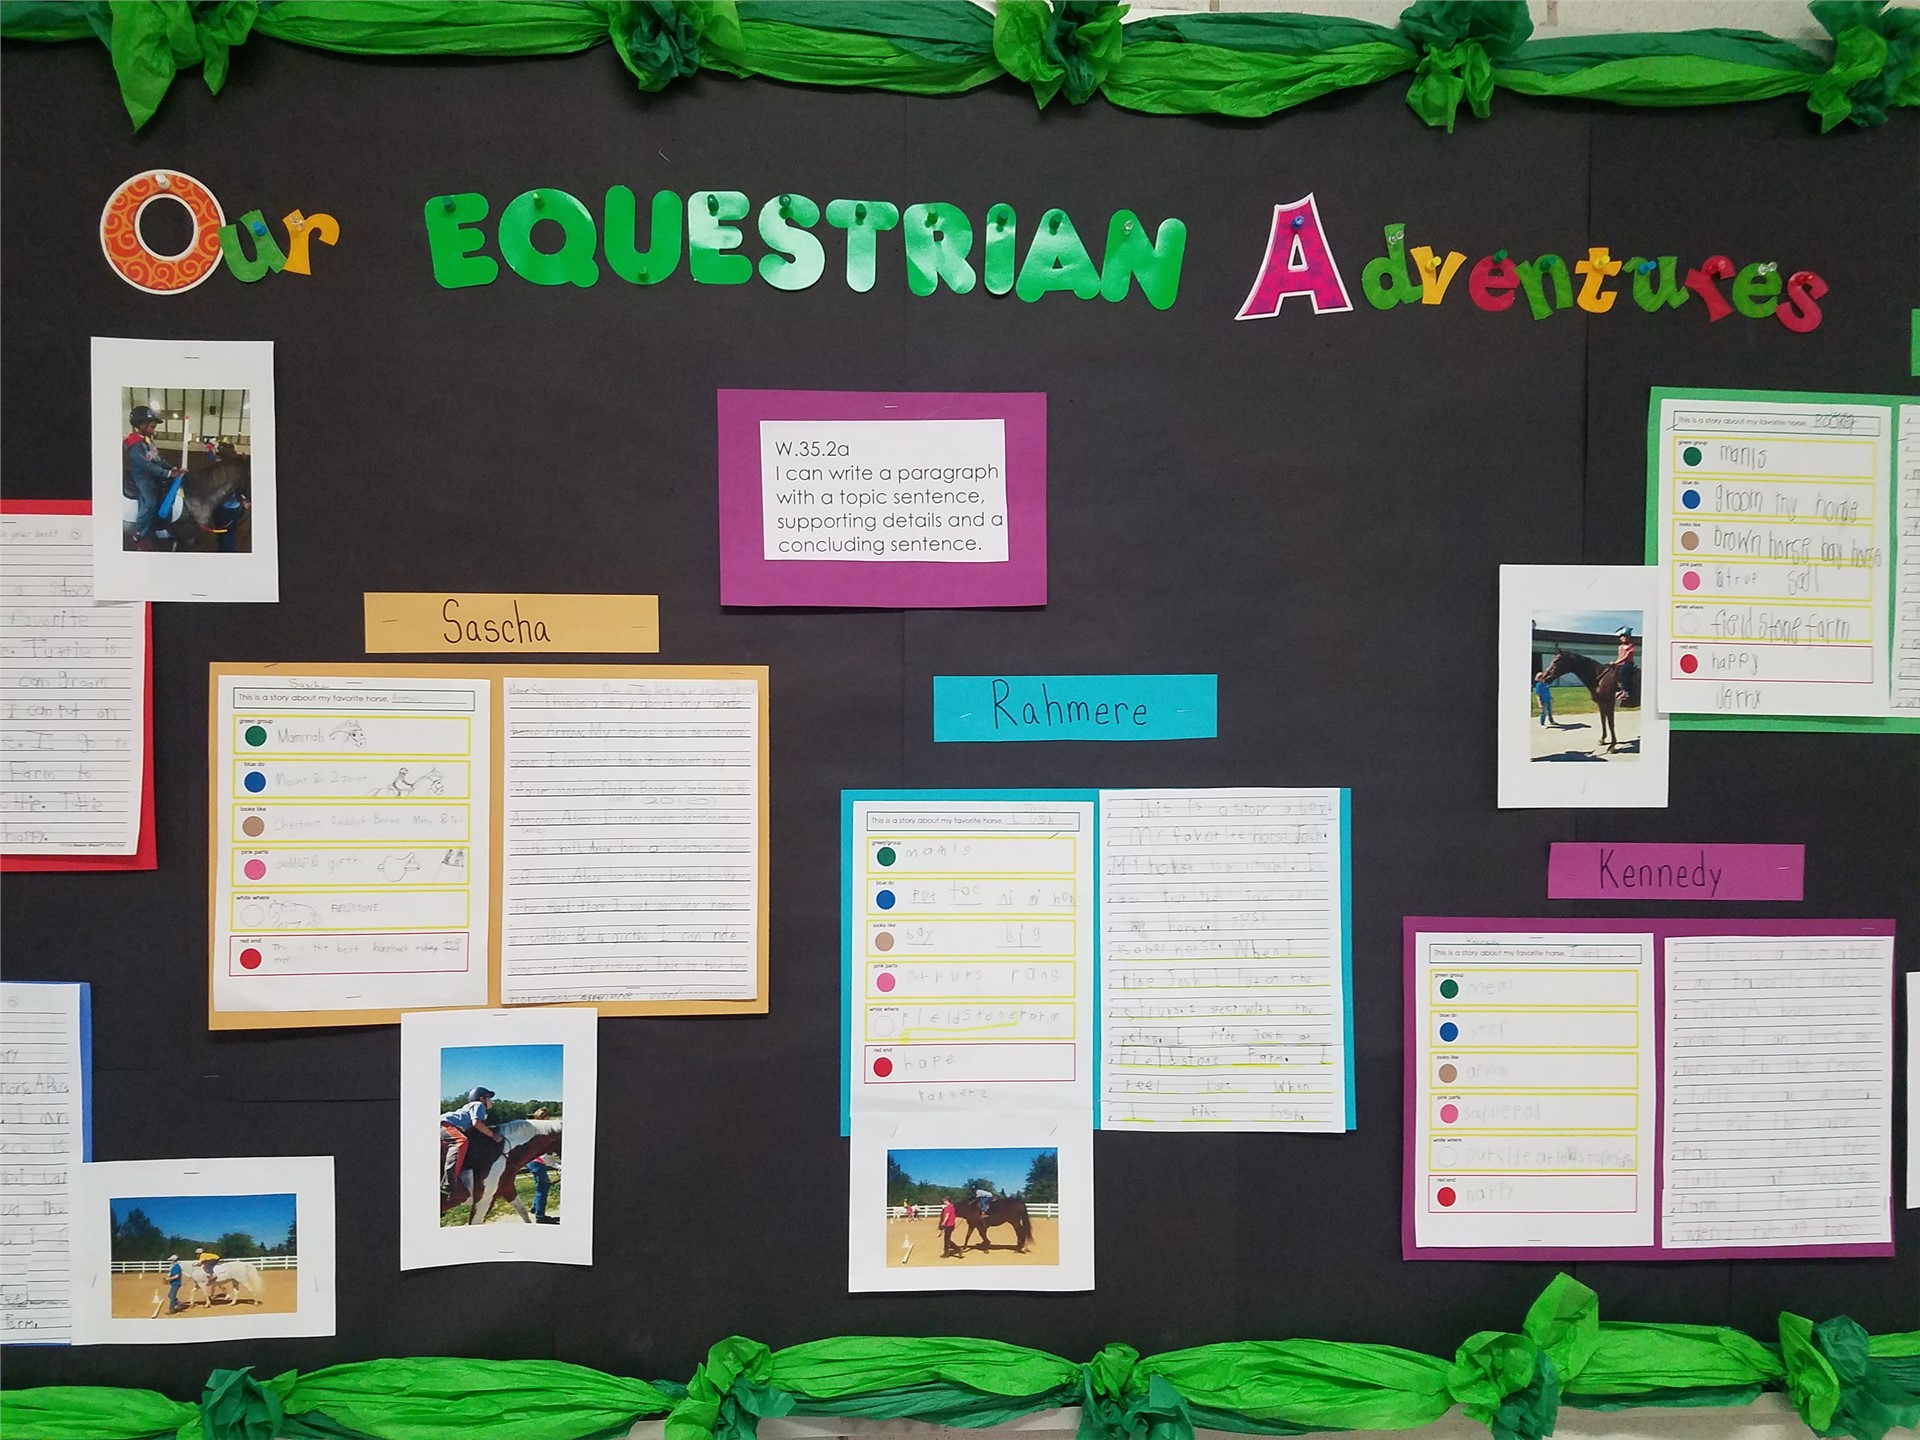 Canterbury students love their time spent with horses!